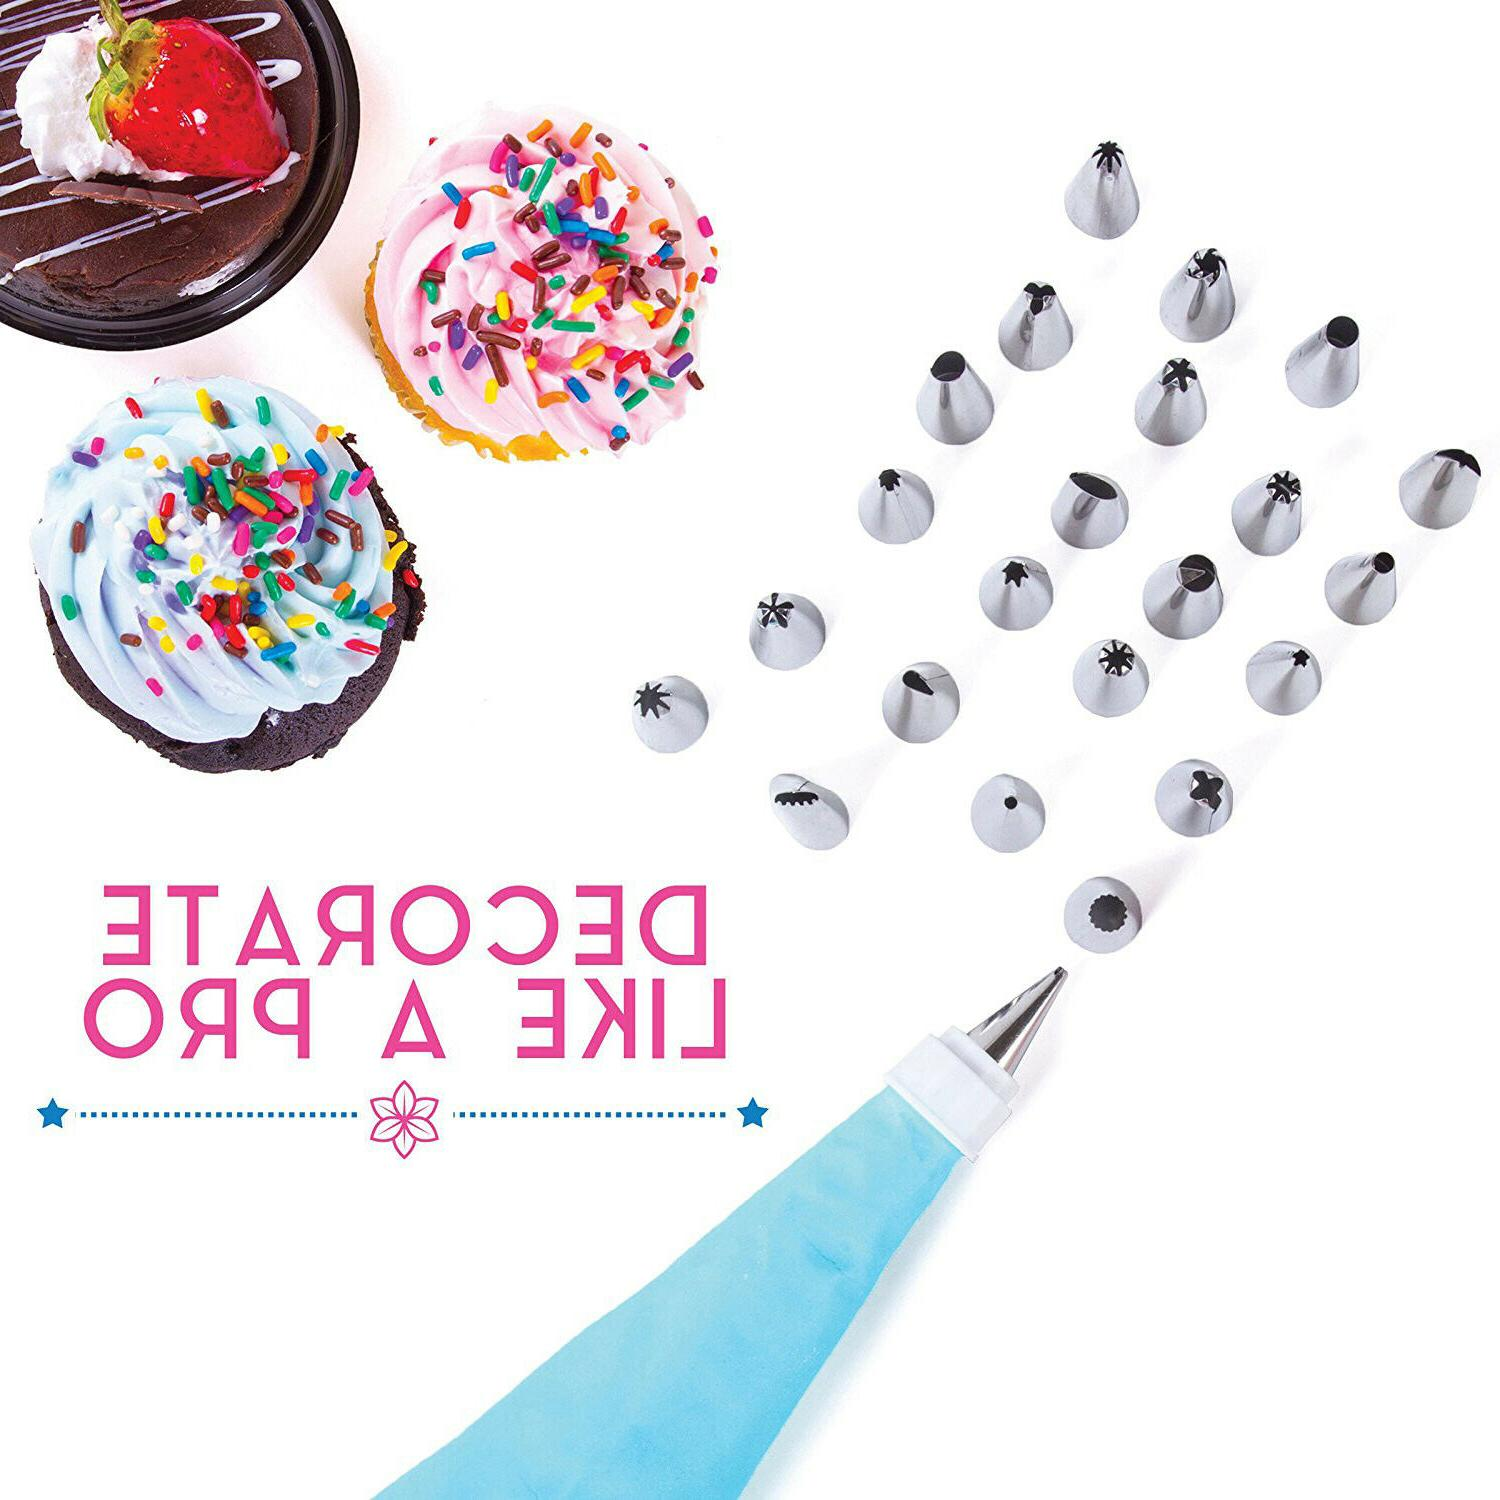 Cake Decorating Tools Kit 54 Tips Bags Nozzles Supplies Equipment